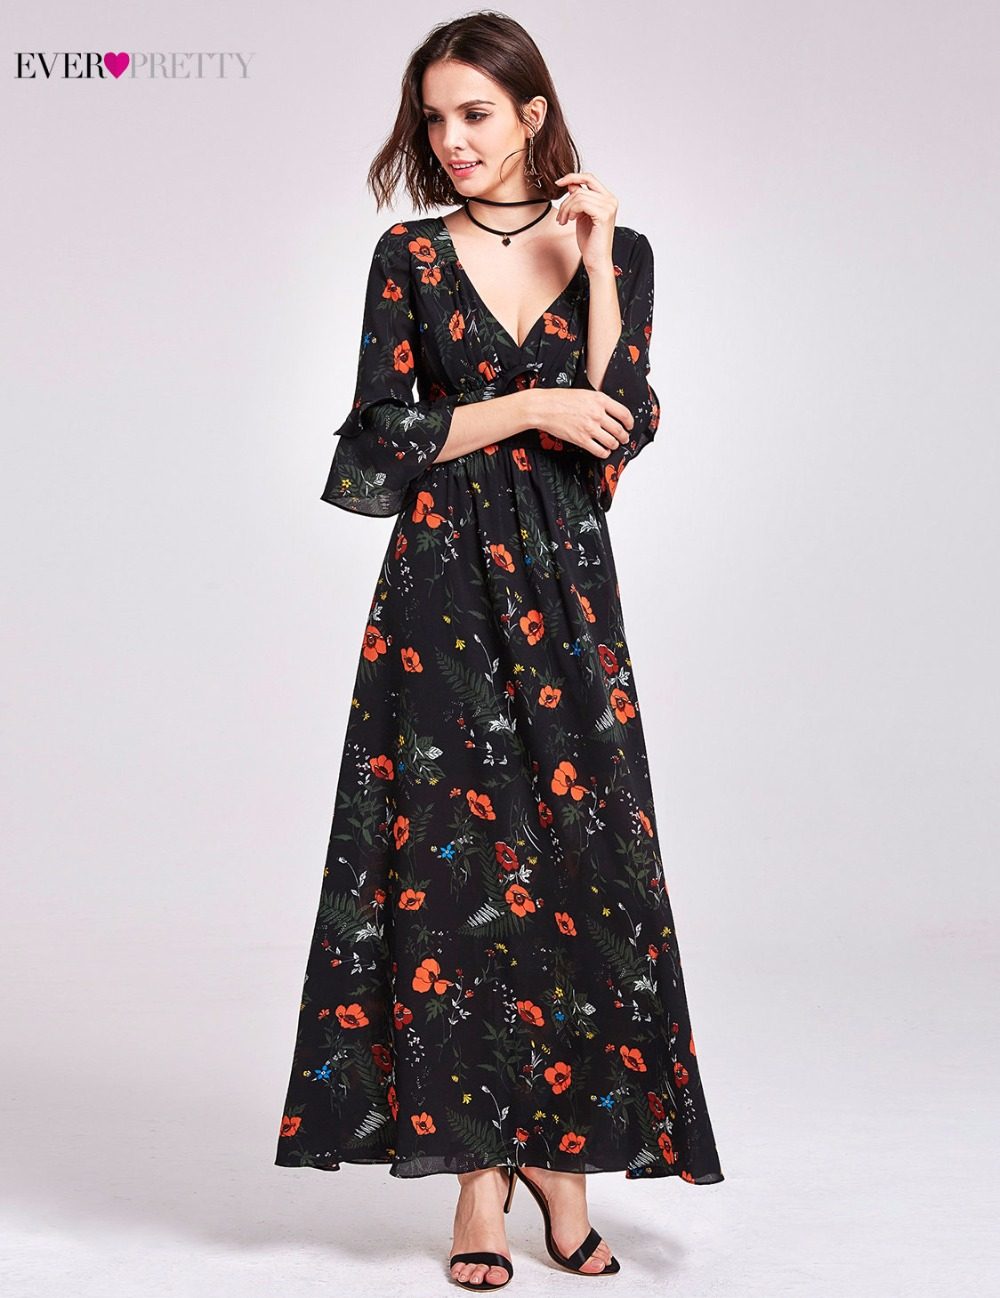 62b5508f41 Aliexpress.com : Buy Floral Print Evening Dress 2018 Ever Pretty AS07170 V  Neck Empire Waist Flare Sleeve Ruffle Maxi Dress Casual Beach Party Dress  from ...